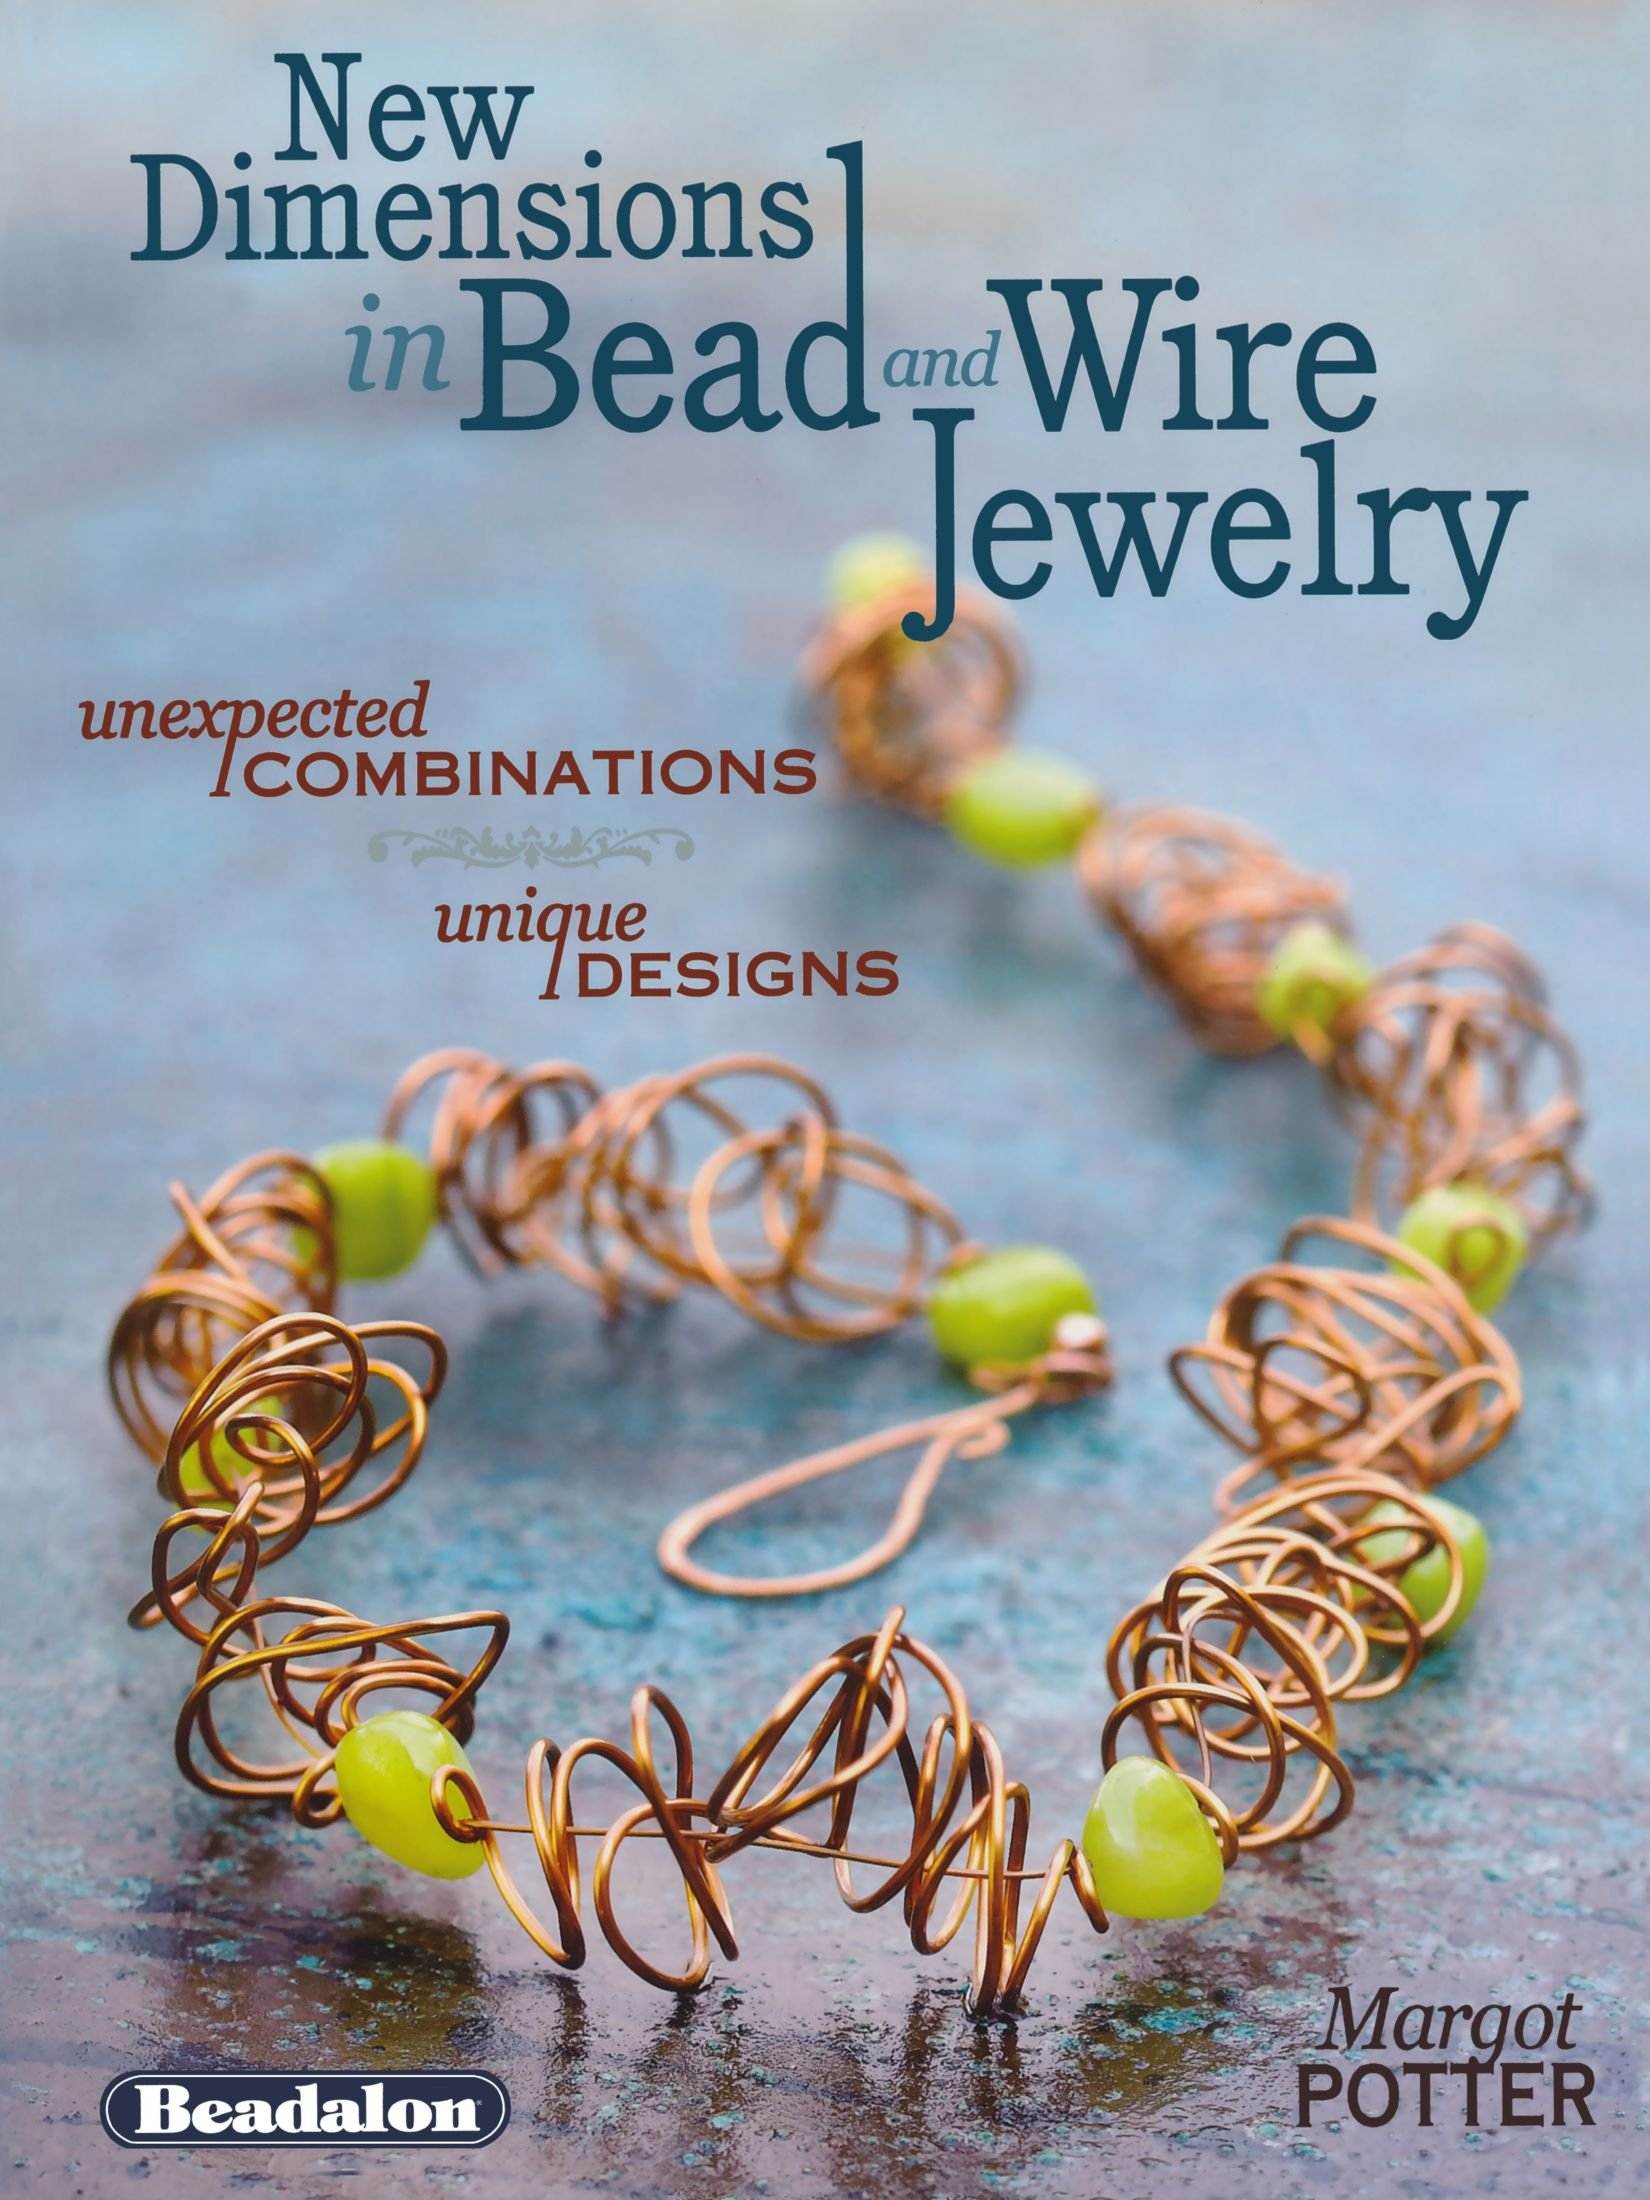 New Dimensions in Bead and Wire Jewelry: Unexpected Combinations, Unique Designs Paperback – July 26, 2011 Margot Potter North Light Books 1440309248 4336838515